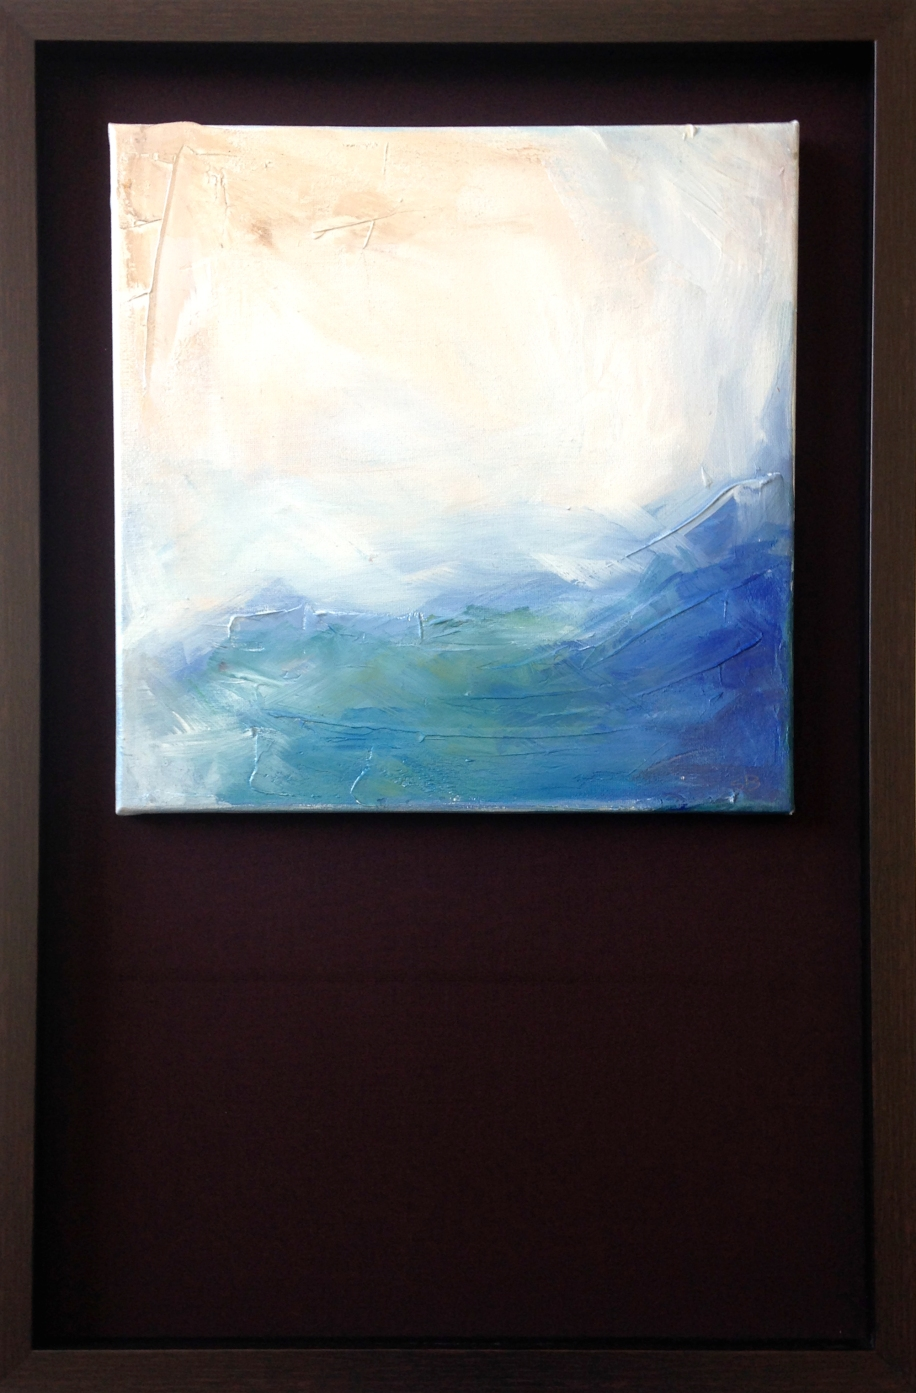 Original 'Water' Framed